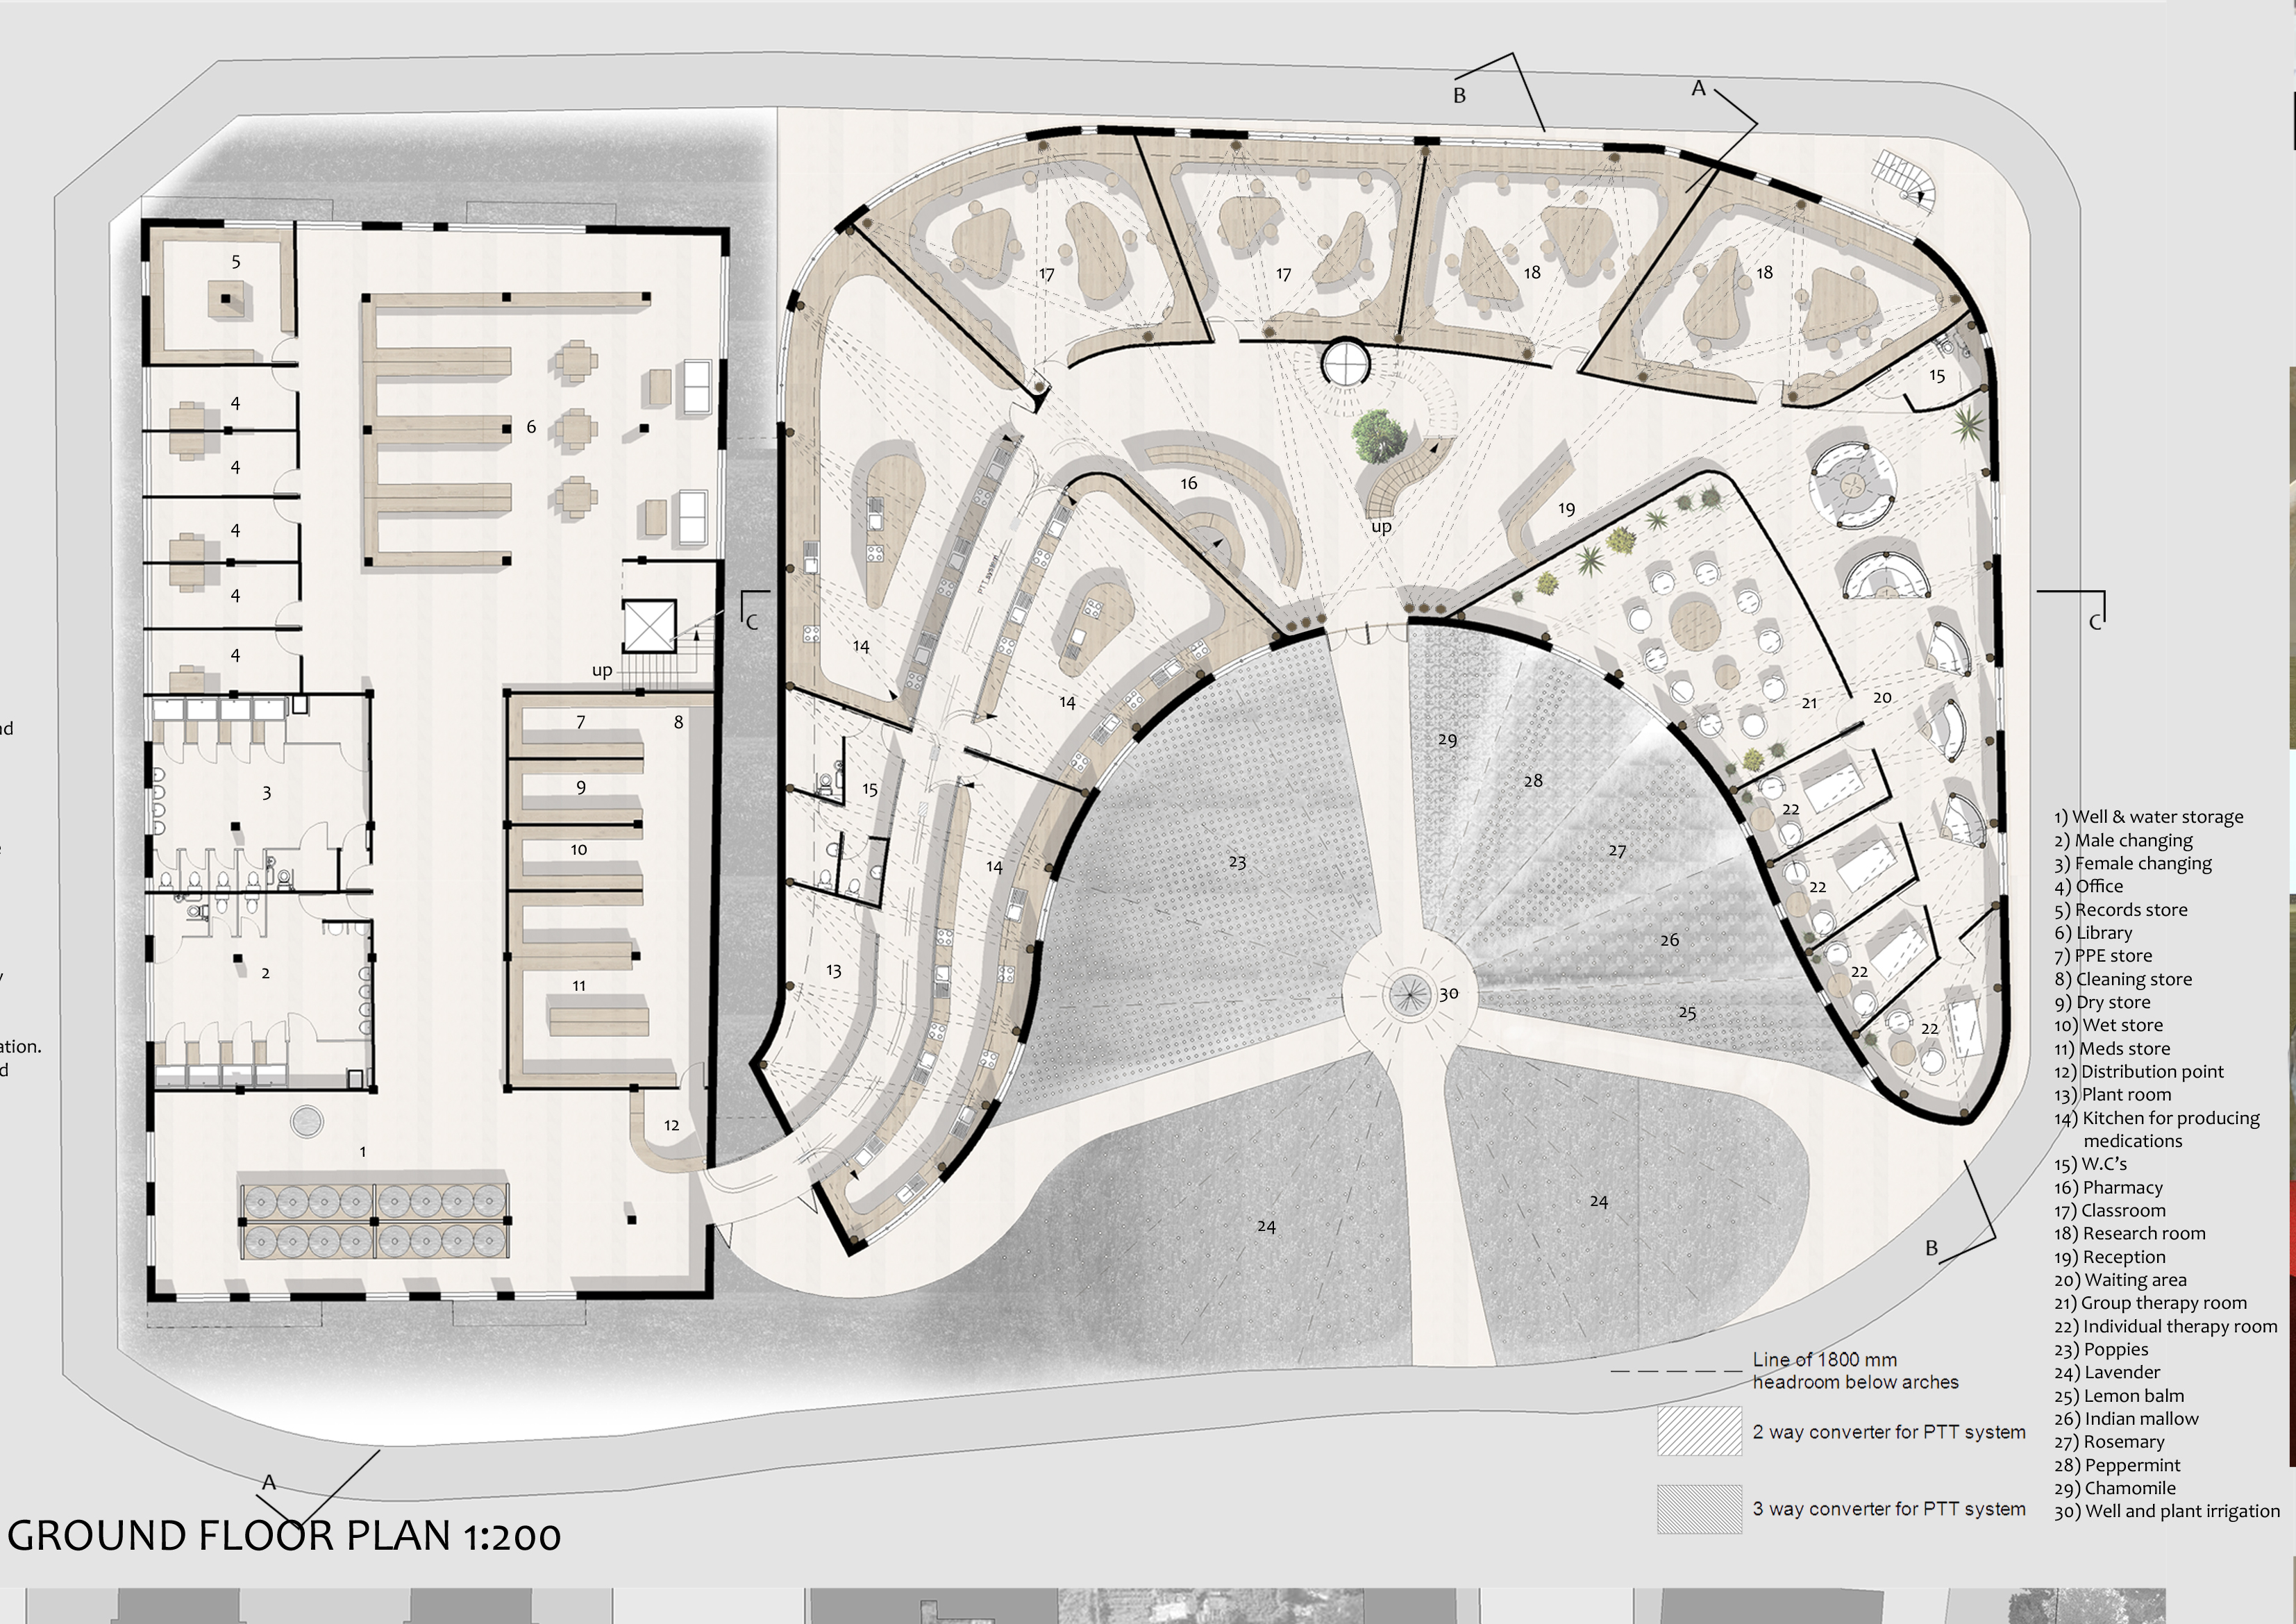 Barcelona Horticultural Therapy Centre Site Plan